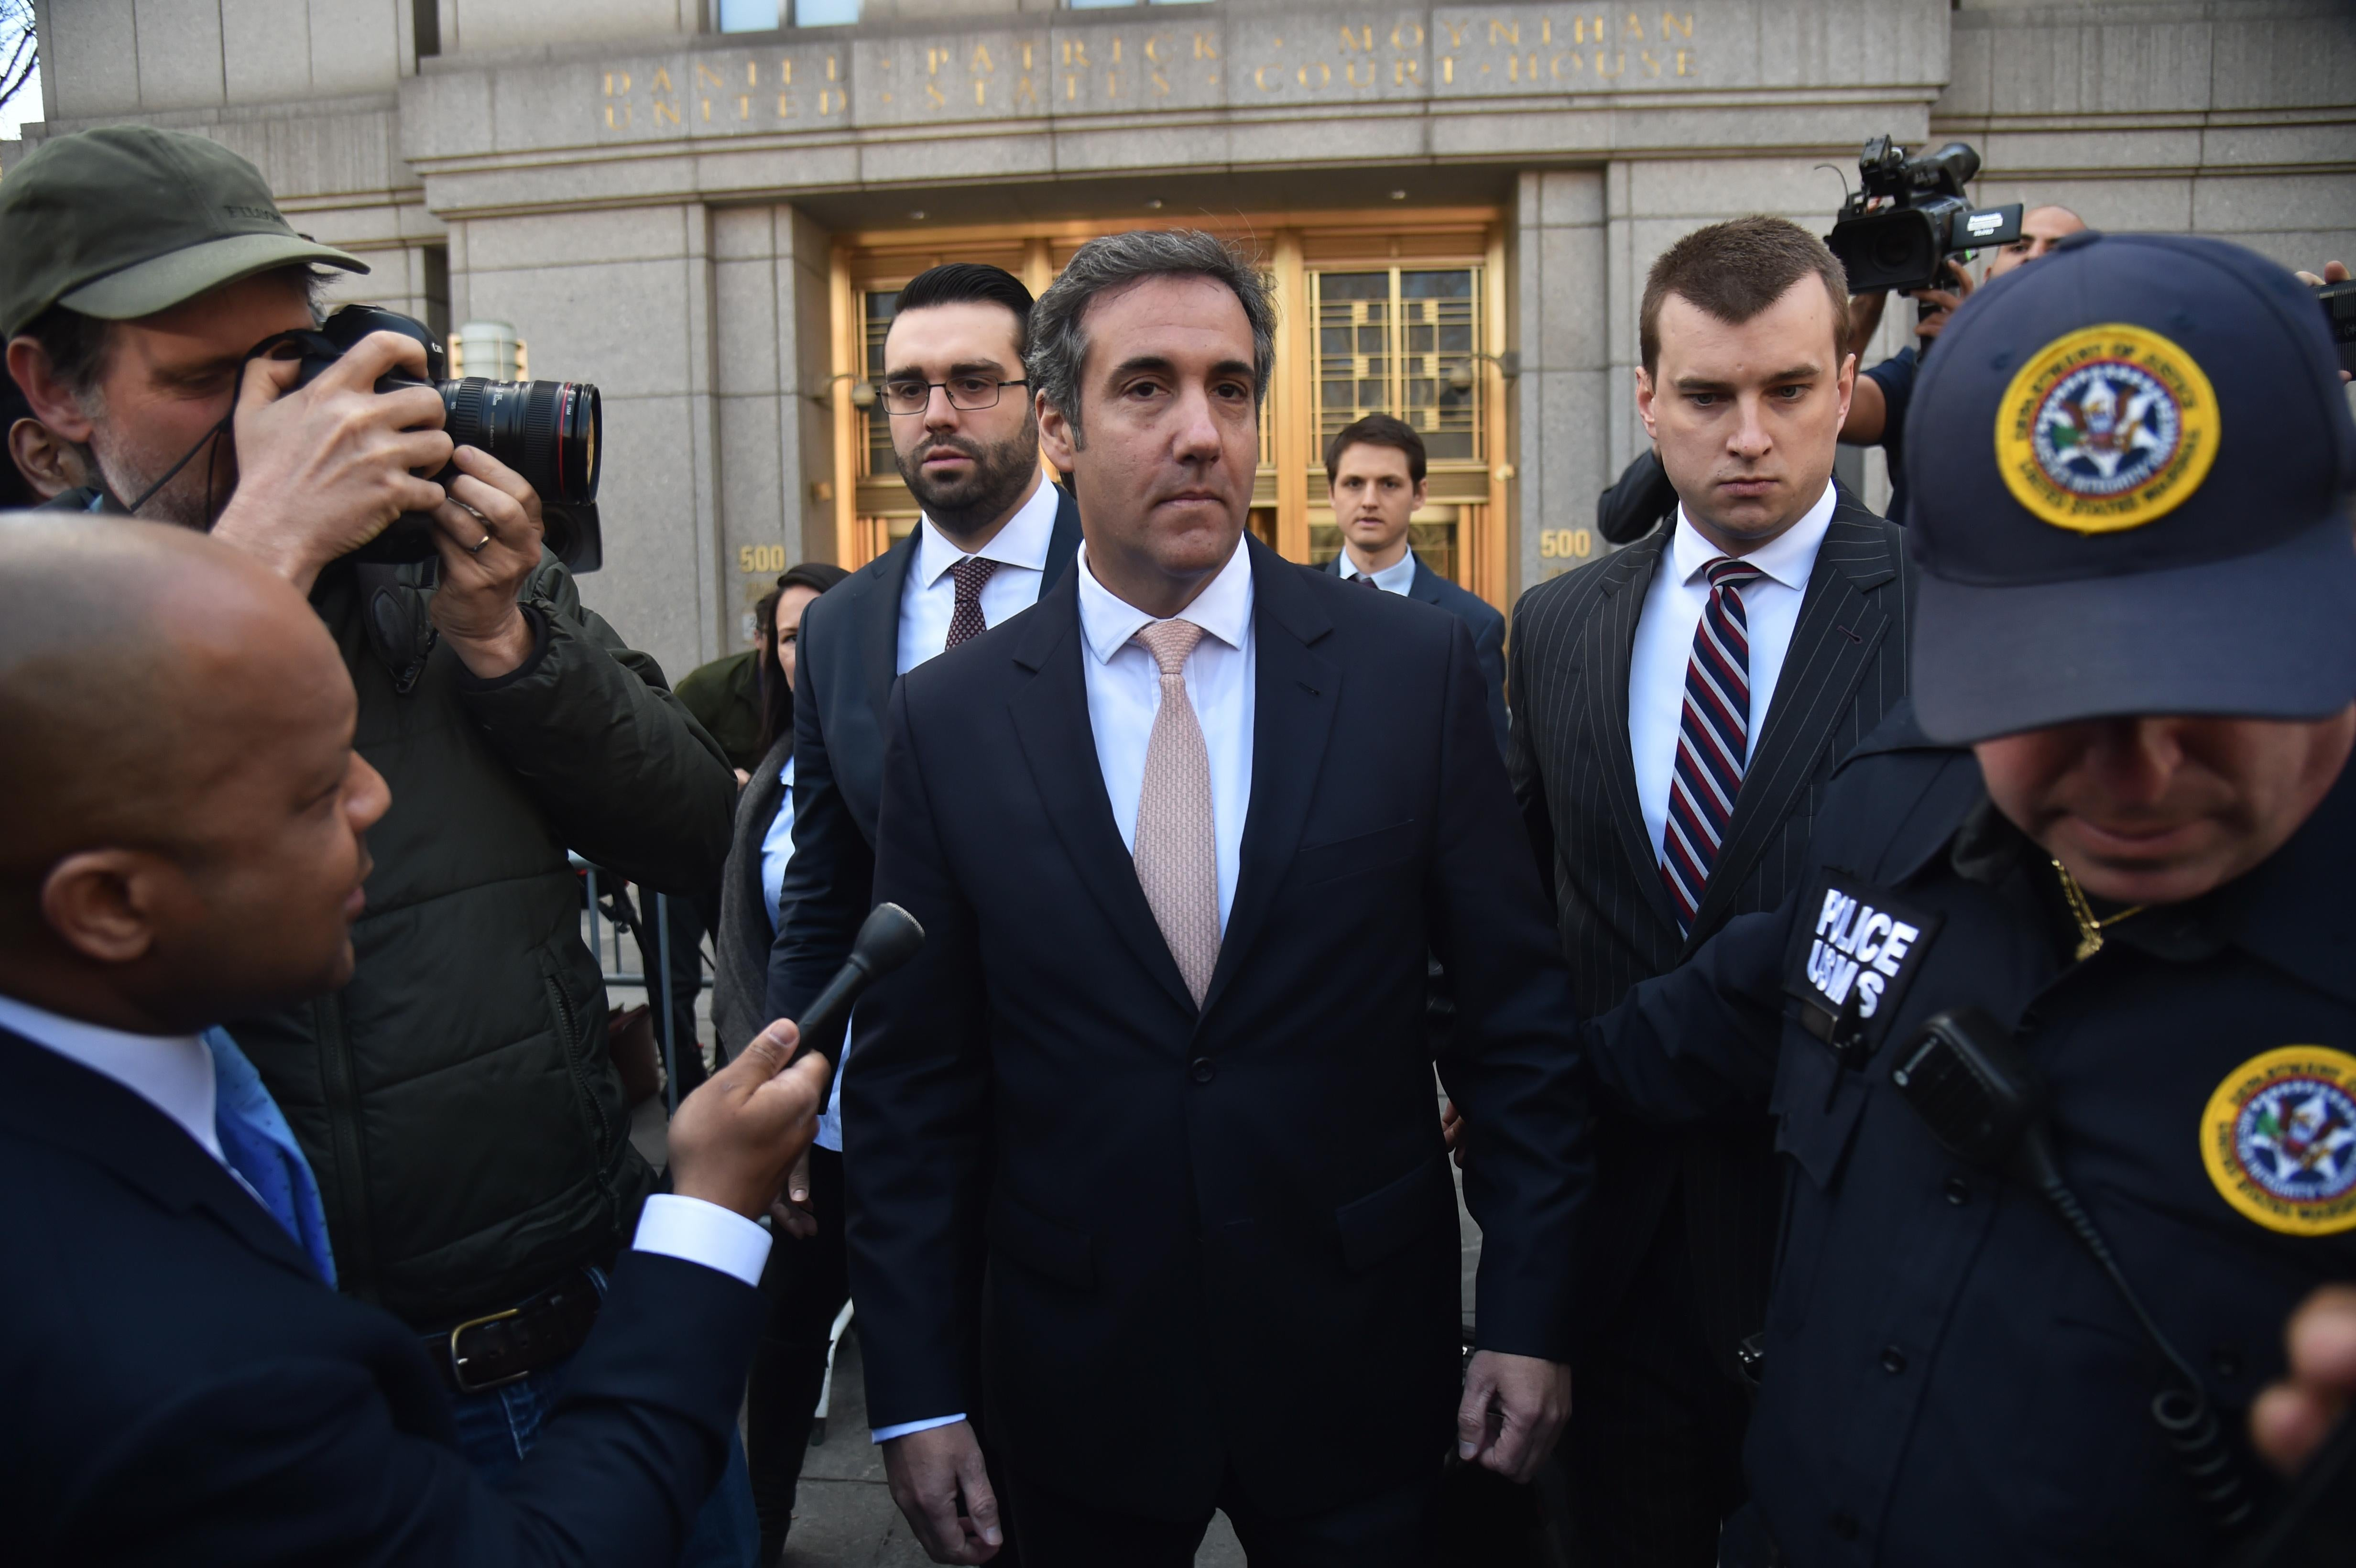 US President Donald Trump's personal lawyer Michael Cohen(C) leaves the US Courthouse in New York on April 26, 2018. - US President Donald Trump acknowledged on Thursday that his personal lawyer, Michael Cohen, represented him in a 'deal' involving porn star Stormy Daniels. Trump had previously denied knowledge of a $130,000 payment Cohen made to Daniels that she claims was to prevent her from talking about their alleged 2006 affair.Trump, in a wide-ranging telephone interview with 'Fox and Friends,' admitted for the first time that Cohen represented him in a 'deal' with Daniels, who has filed a lawsuit seeking to have the 'hush agreement' negotiated by Cohen thrown out. (Photo by HECTOR RETAMAL / AFP)        (Photo credit should read HECTOR RETAMAL/AFP/Getty Images)